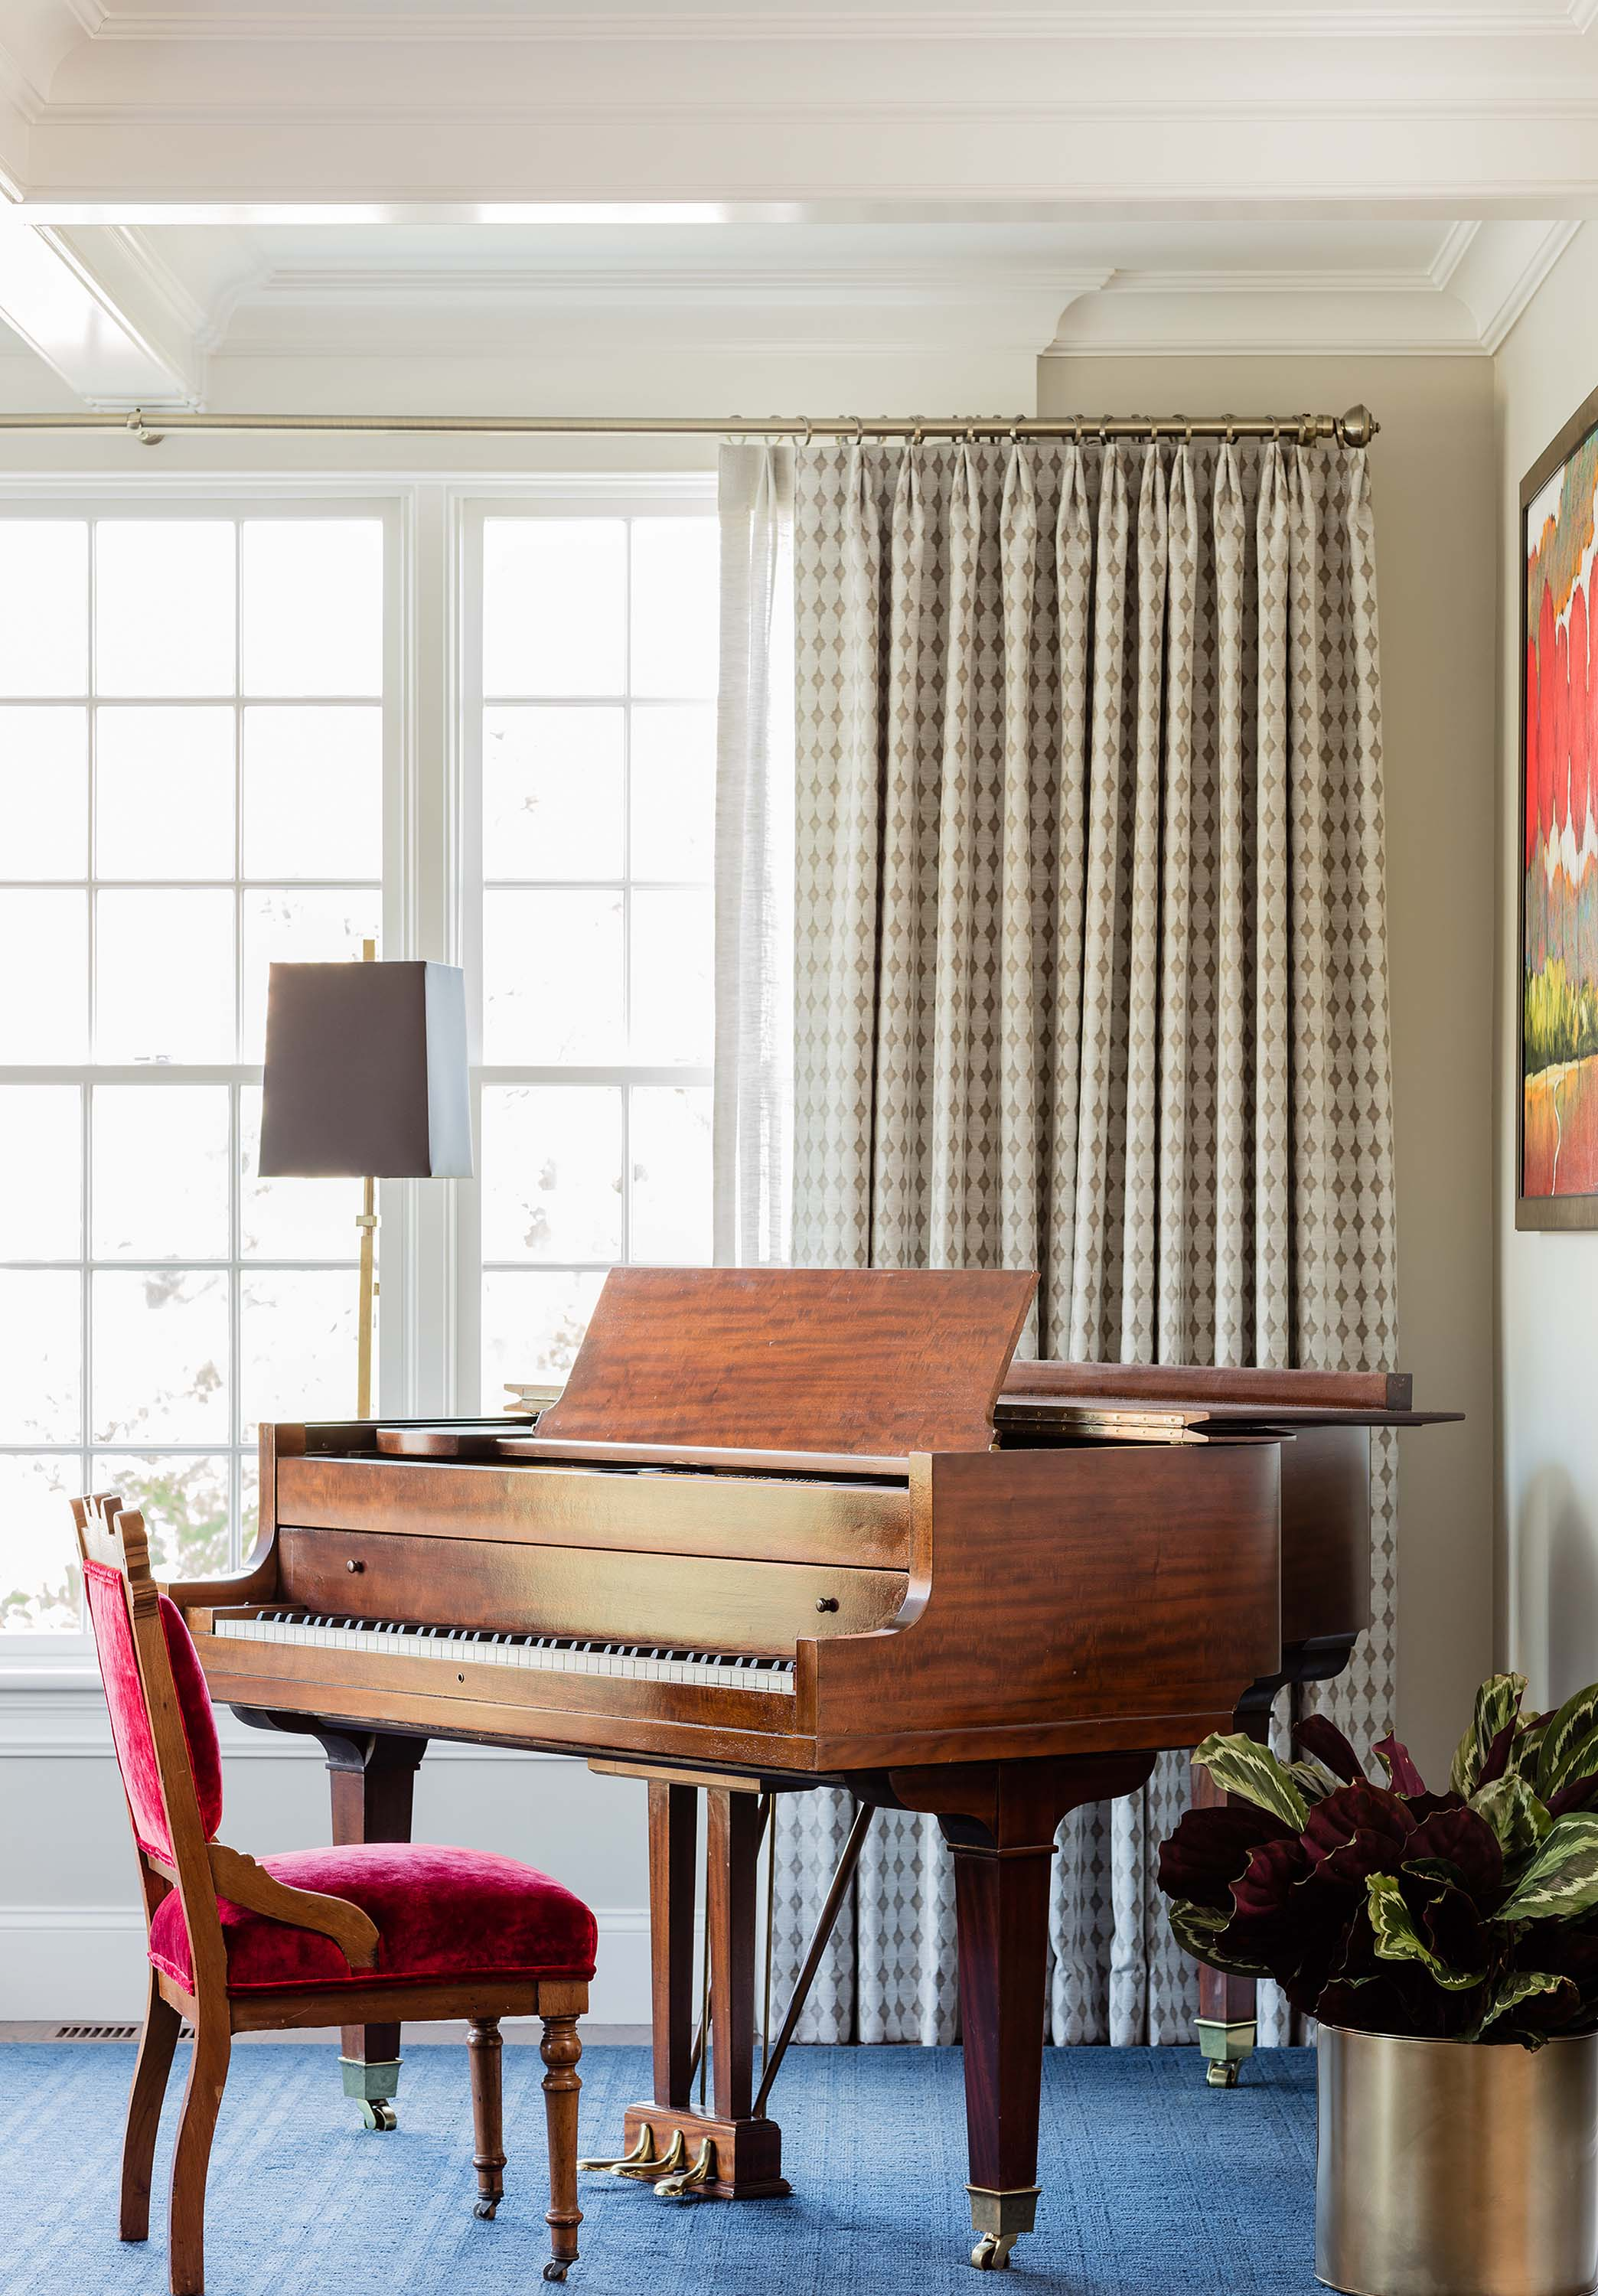 House interior with grand piano and velvet covered chair, rogers and goffigon fabric, arabesque, arabesque fabric, blue rug